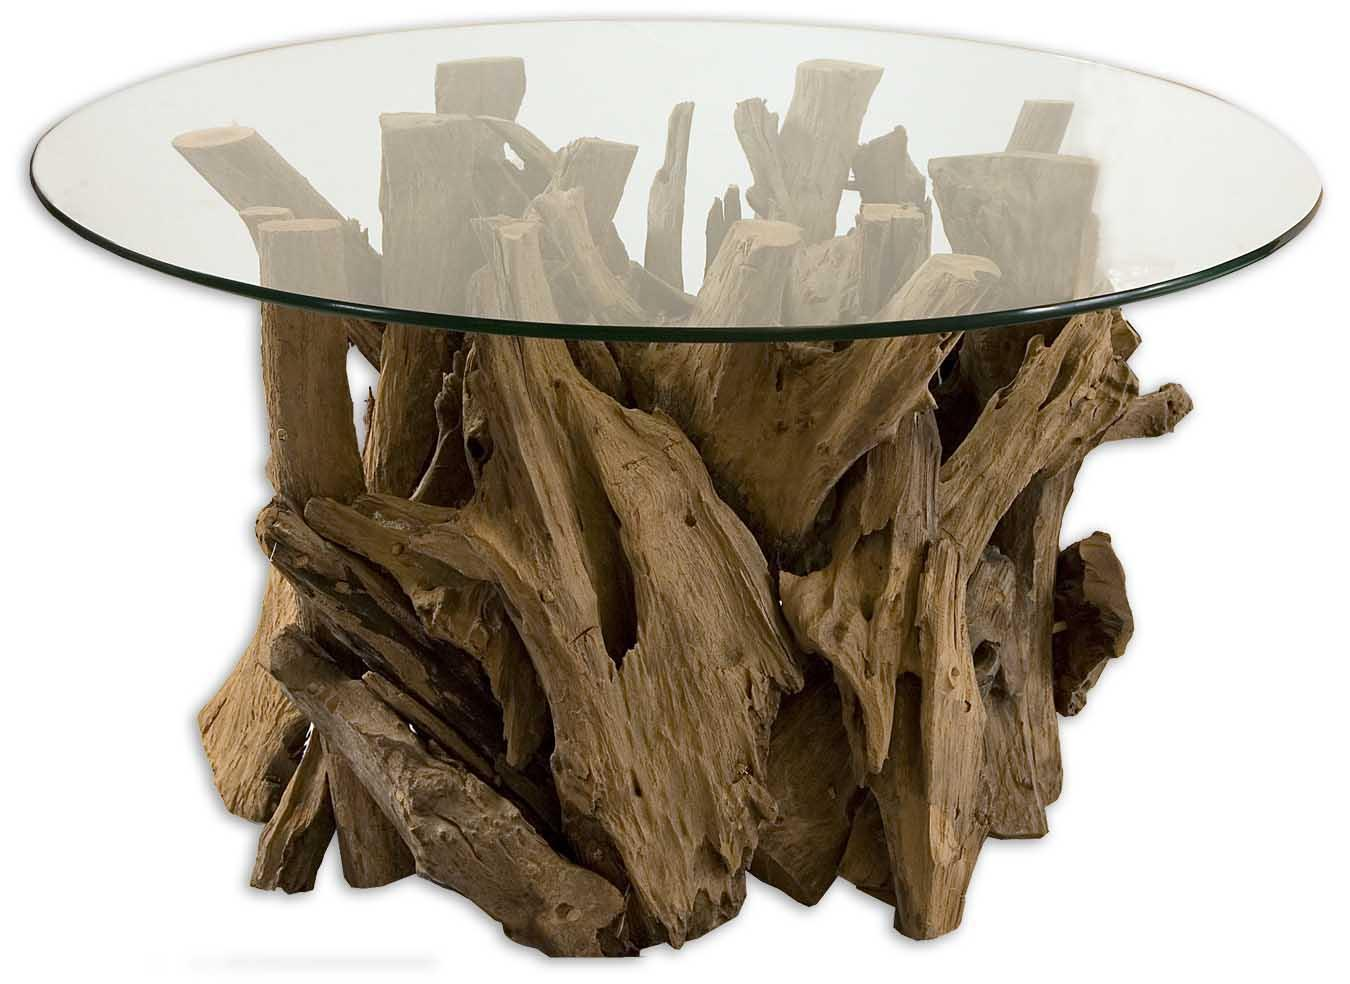 Uttermost Accent Furniture Driftwood Cocktail Table - Item Number: 25519